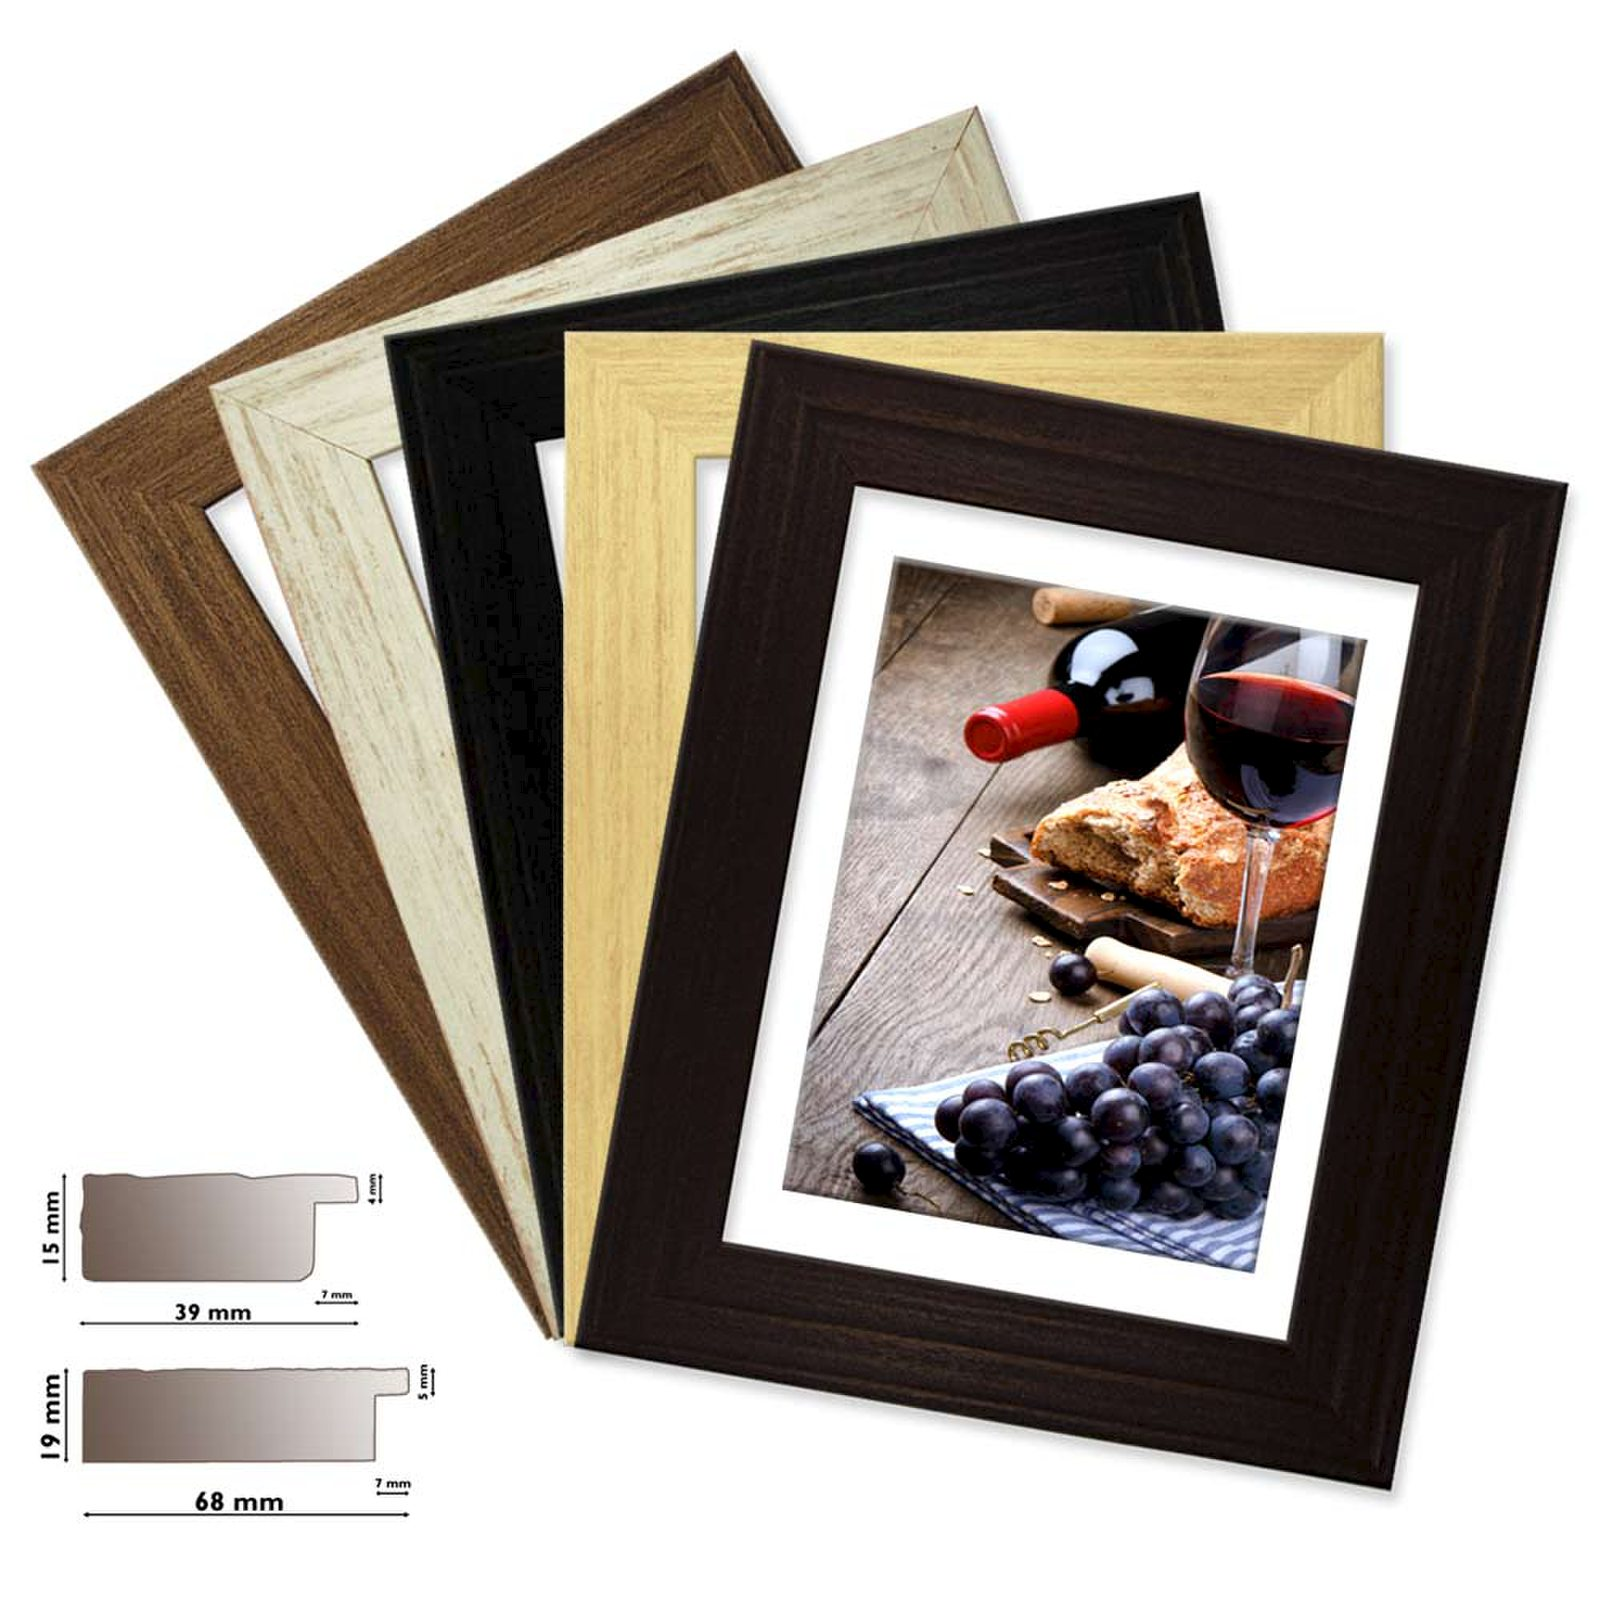 Details about Wood Frame Colorado, in 5 Mats Colours, Picture Frame Wood 1  9/16in